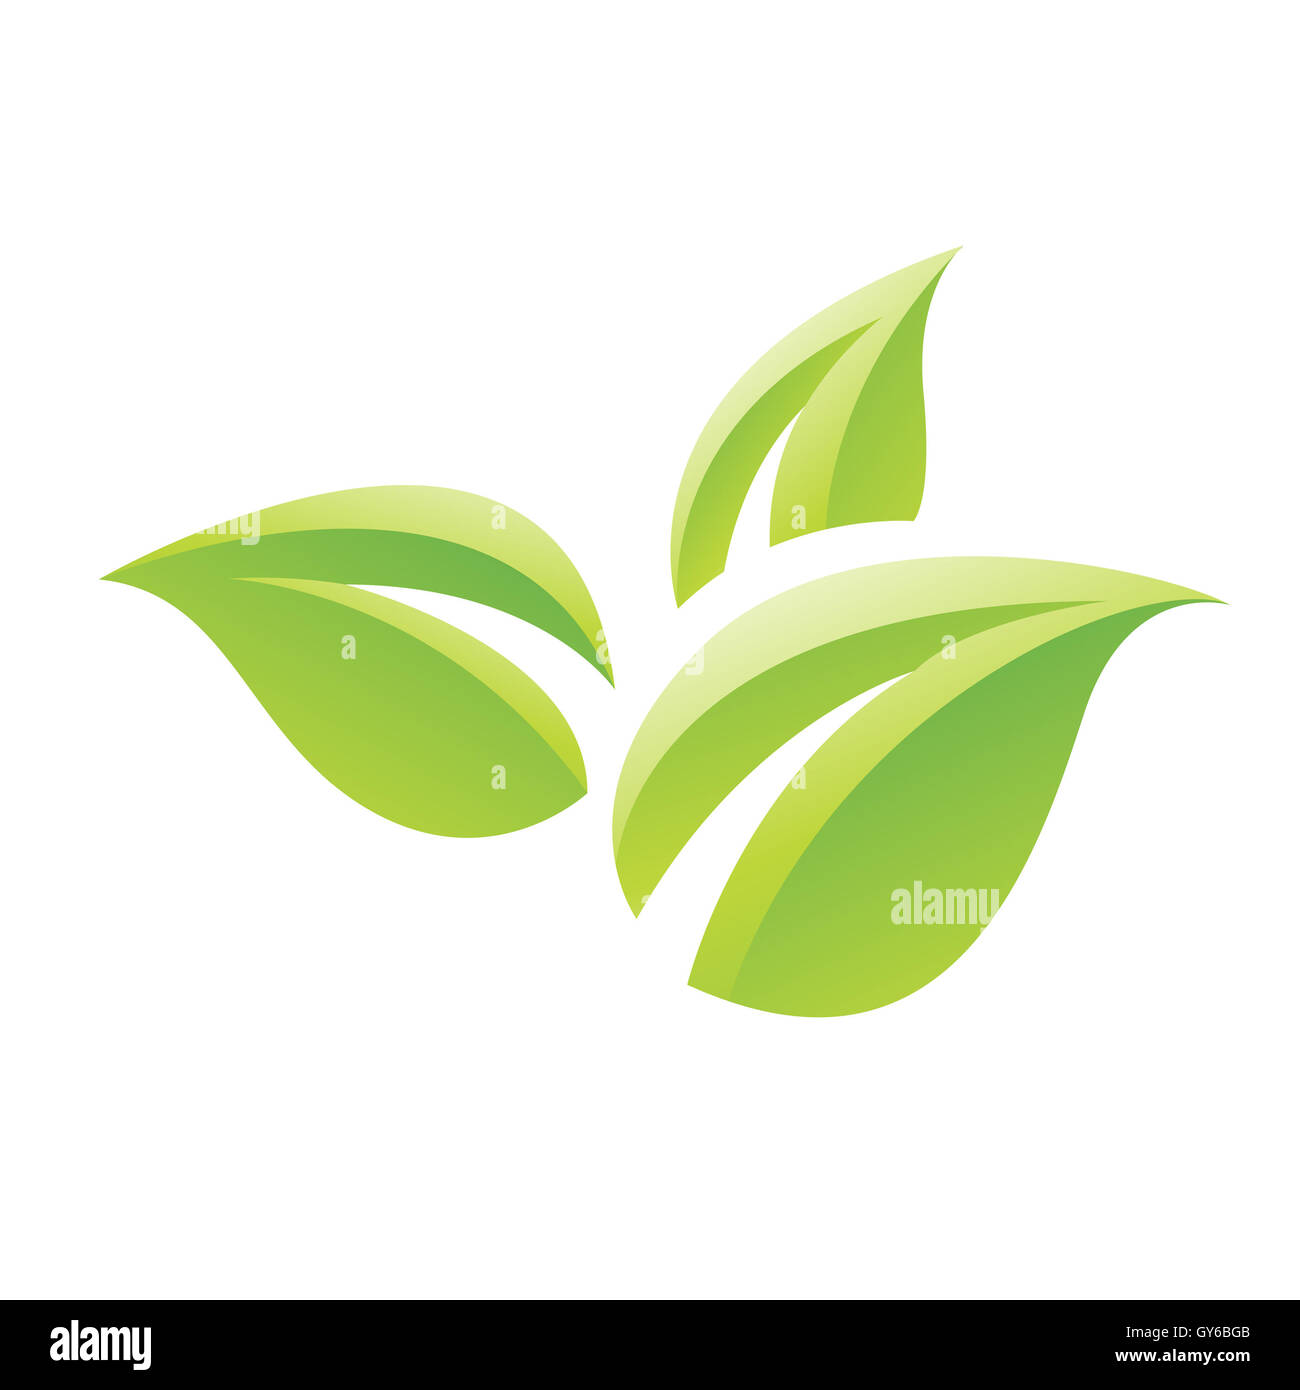 Illustration of Green Glossy Leaves Icon isolated on a white background - Stock Image